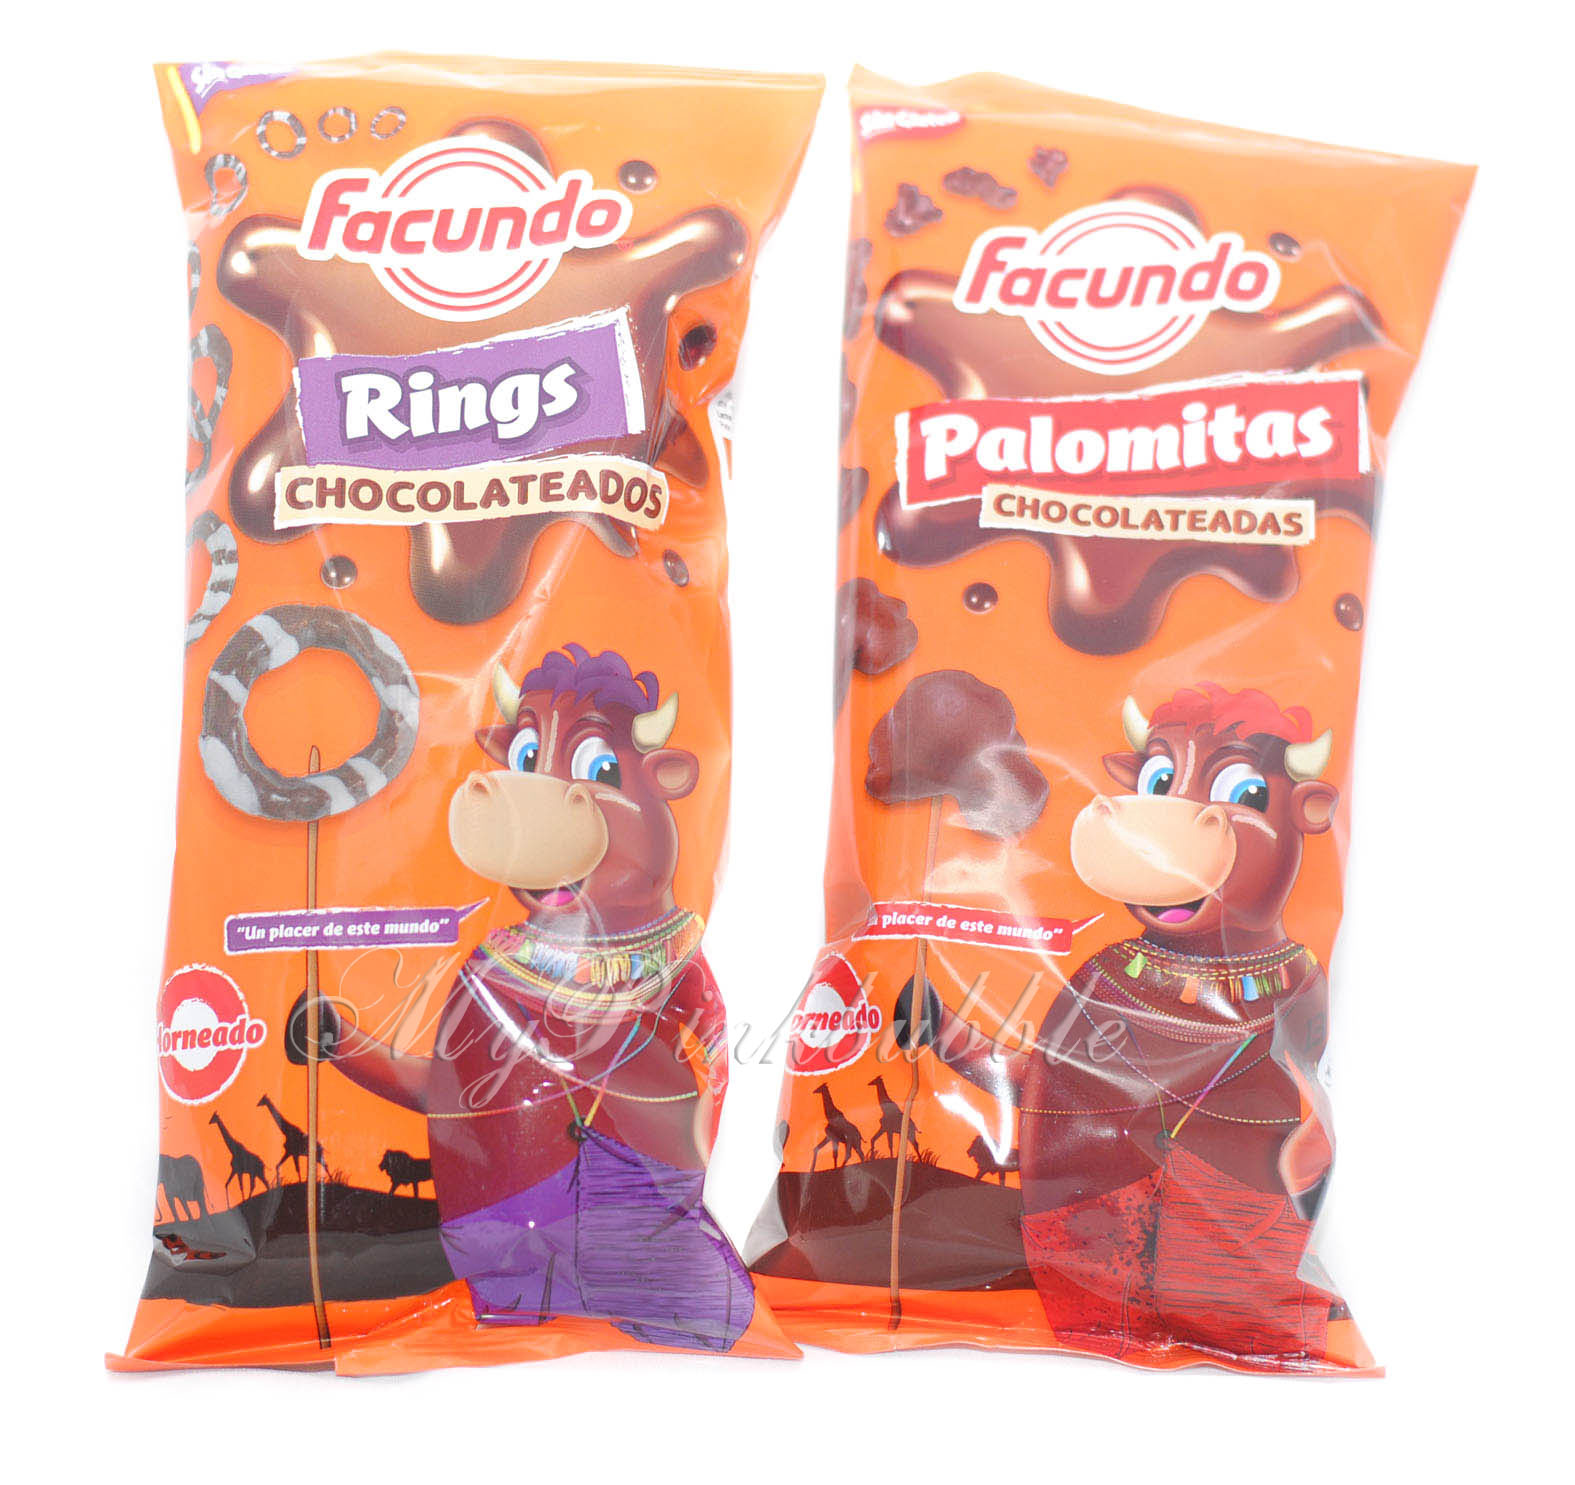 Facundo palomitas y rings chocolateados